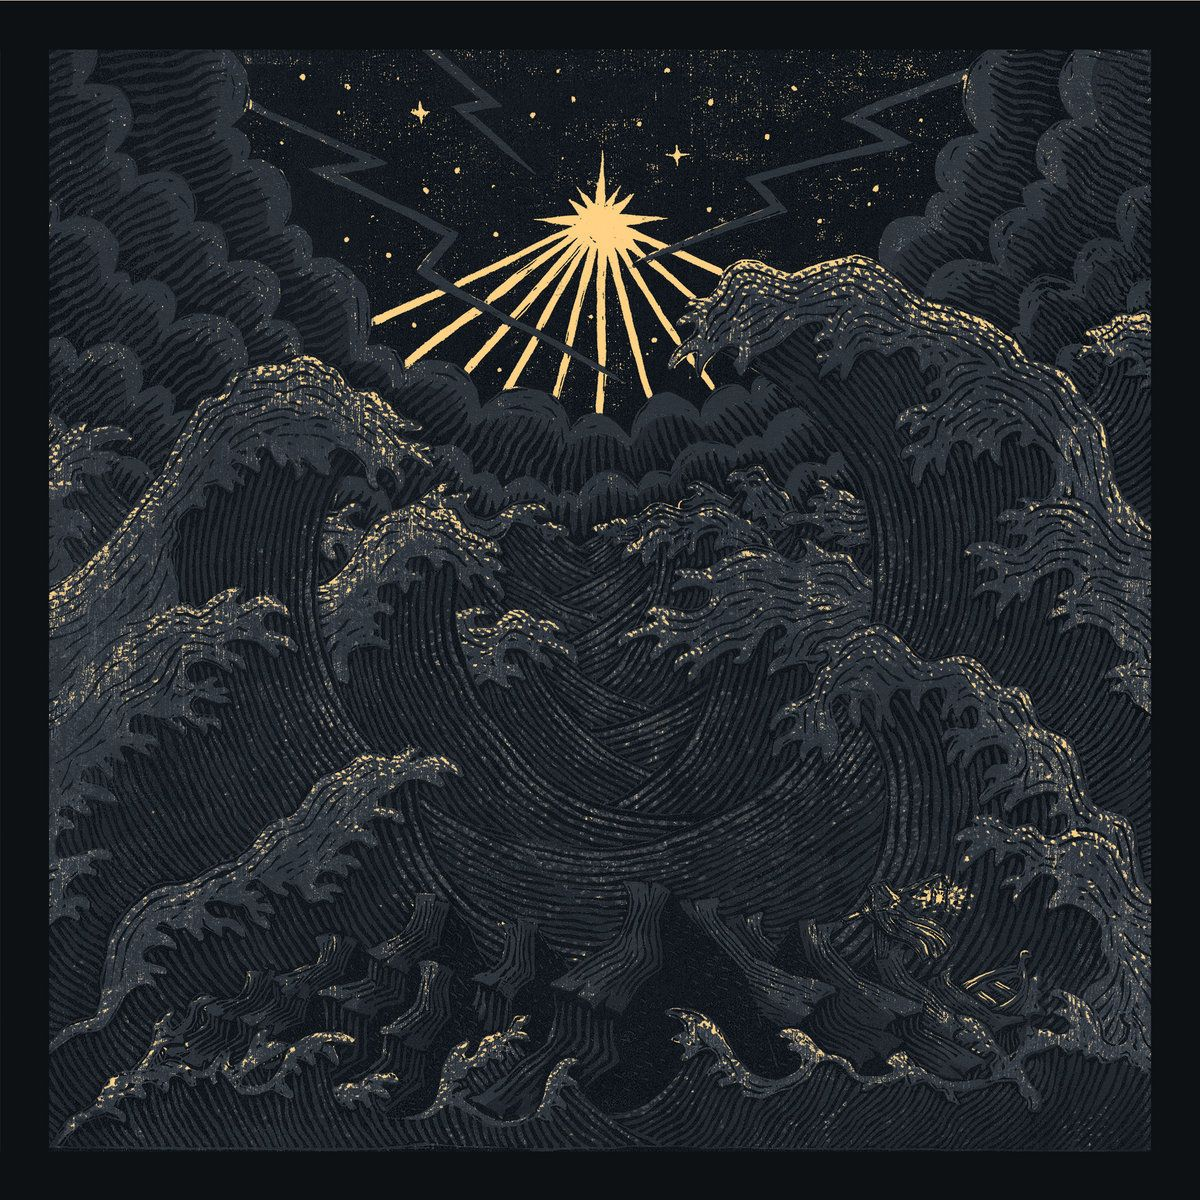 Review for Ceremony of Silence - Oútis